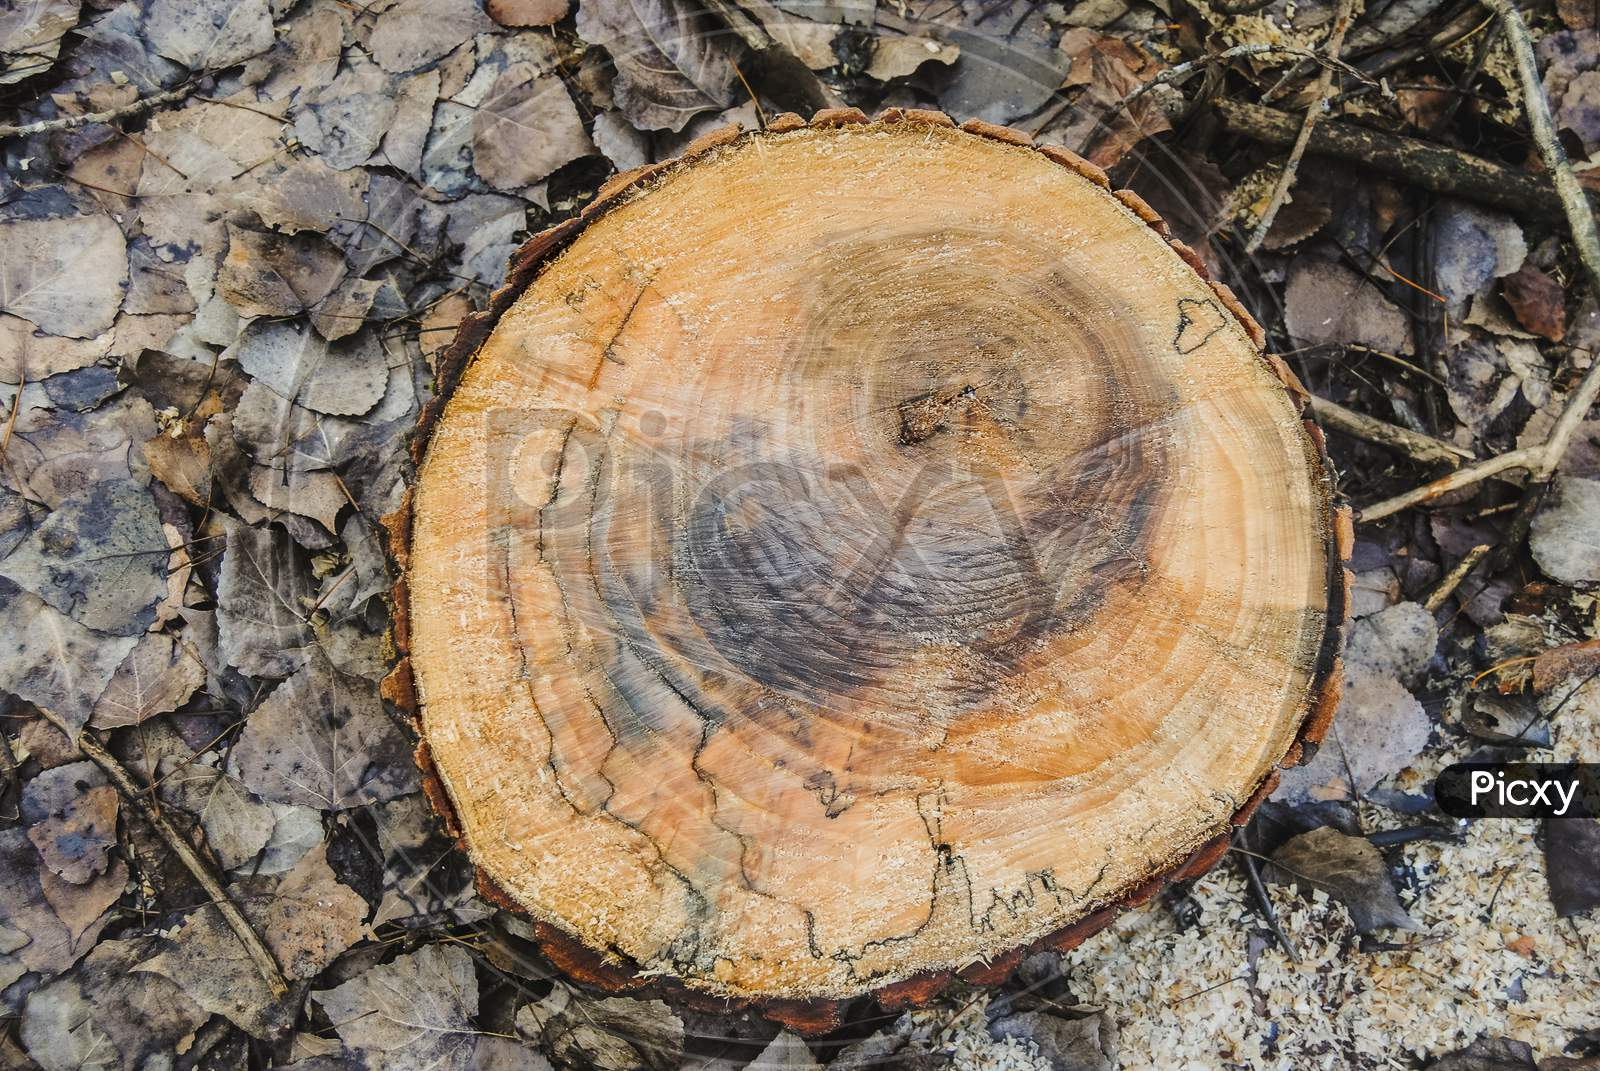 Texture Of A Old Wooden Log With Of Age Lines Marks Surrounded By Wet Leaves And Sawdust